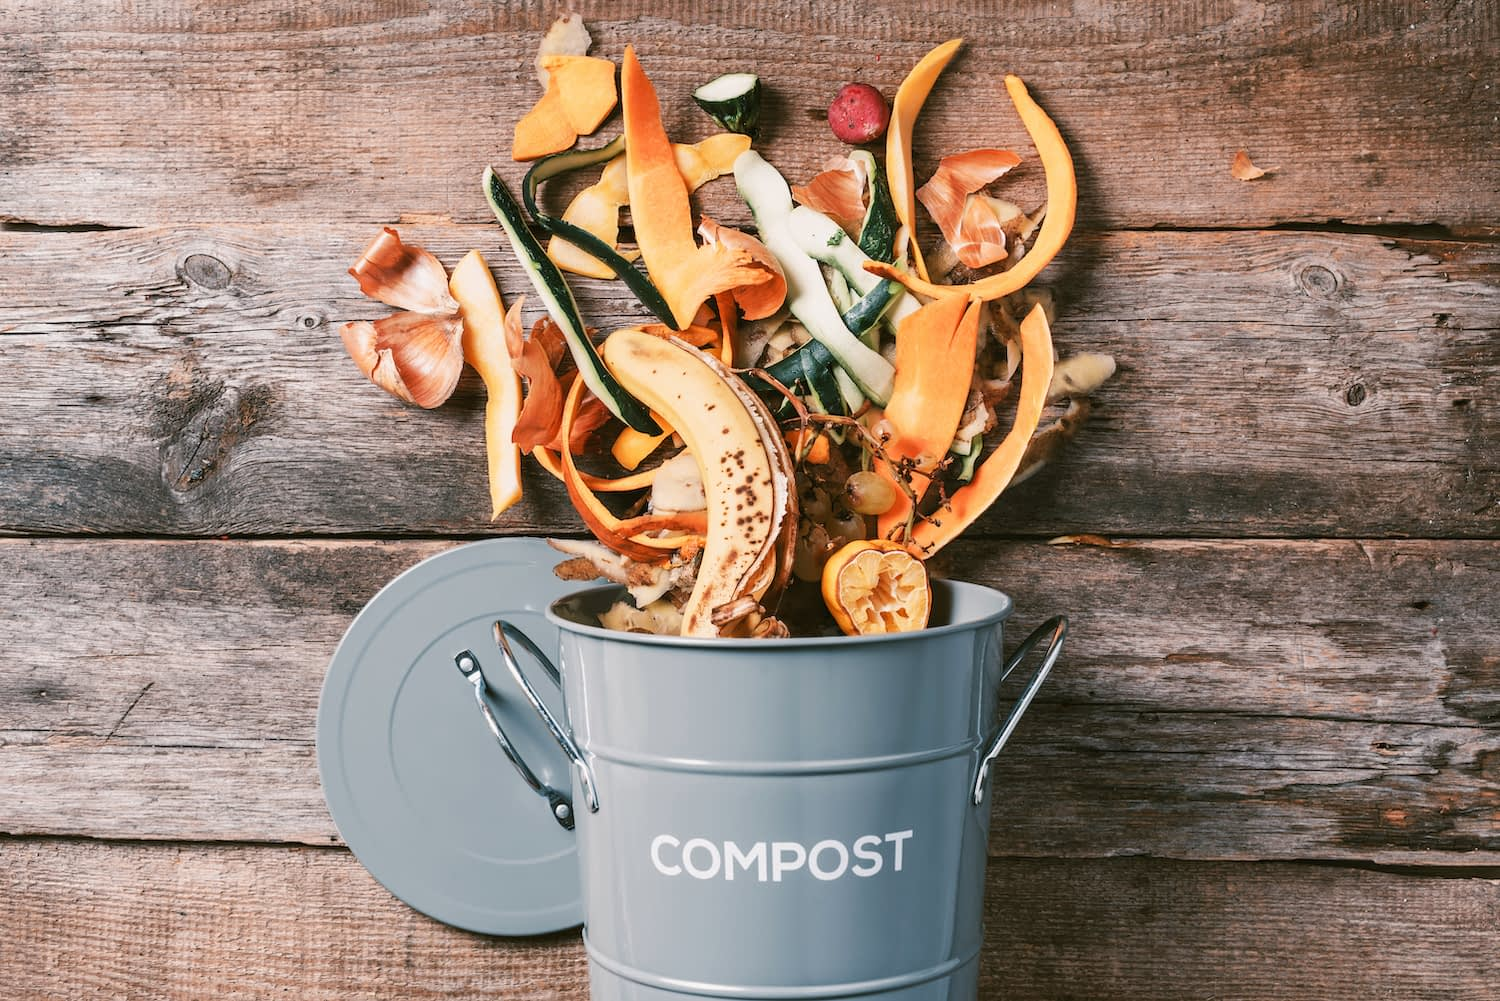 Compost in a compost bucket